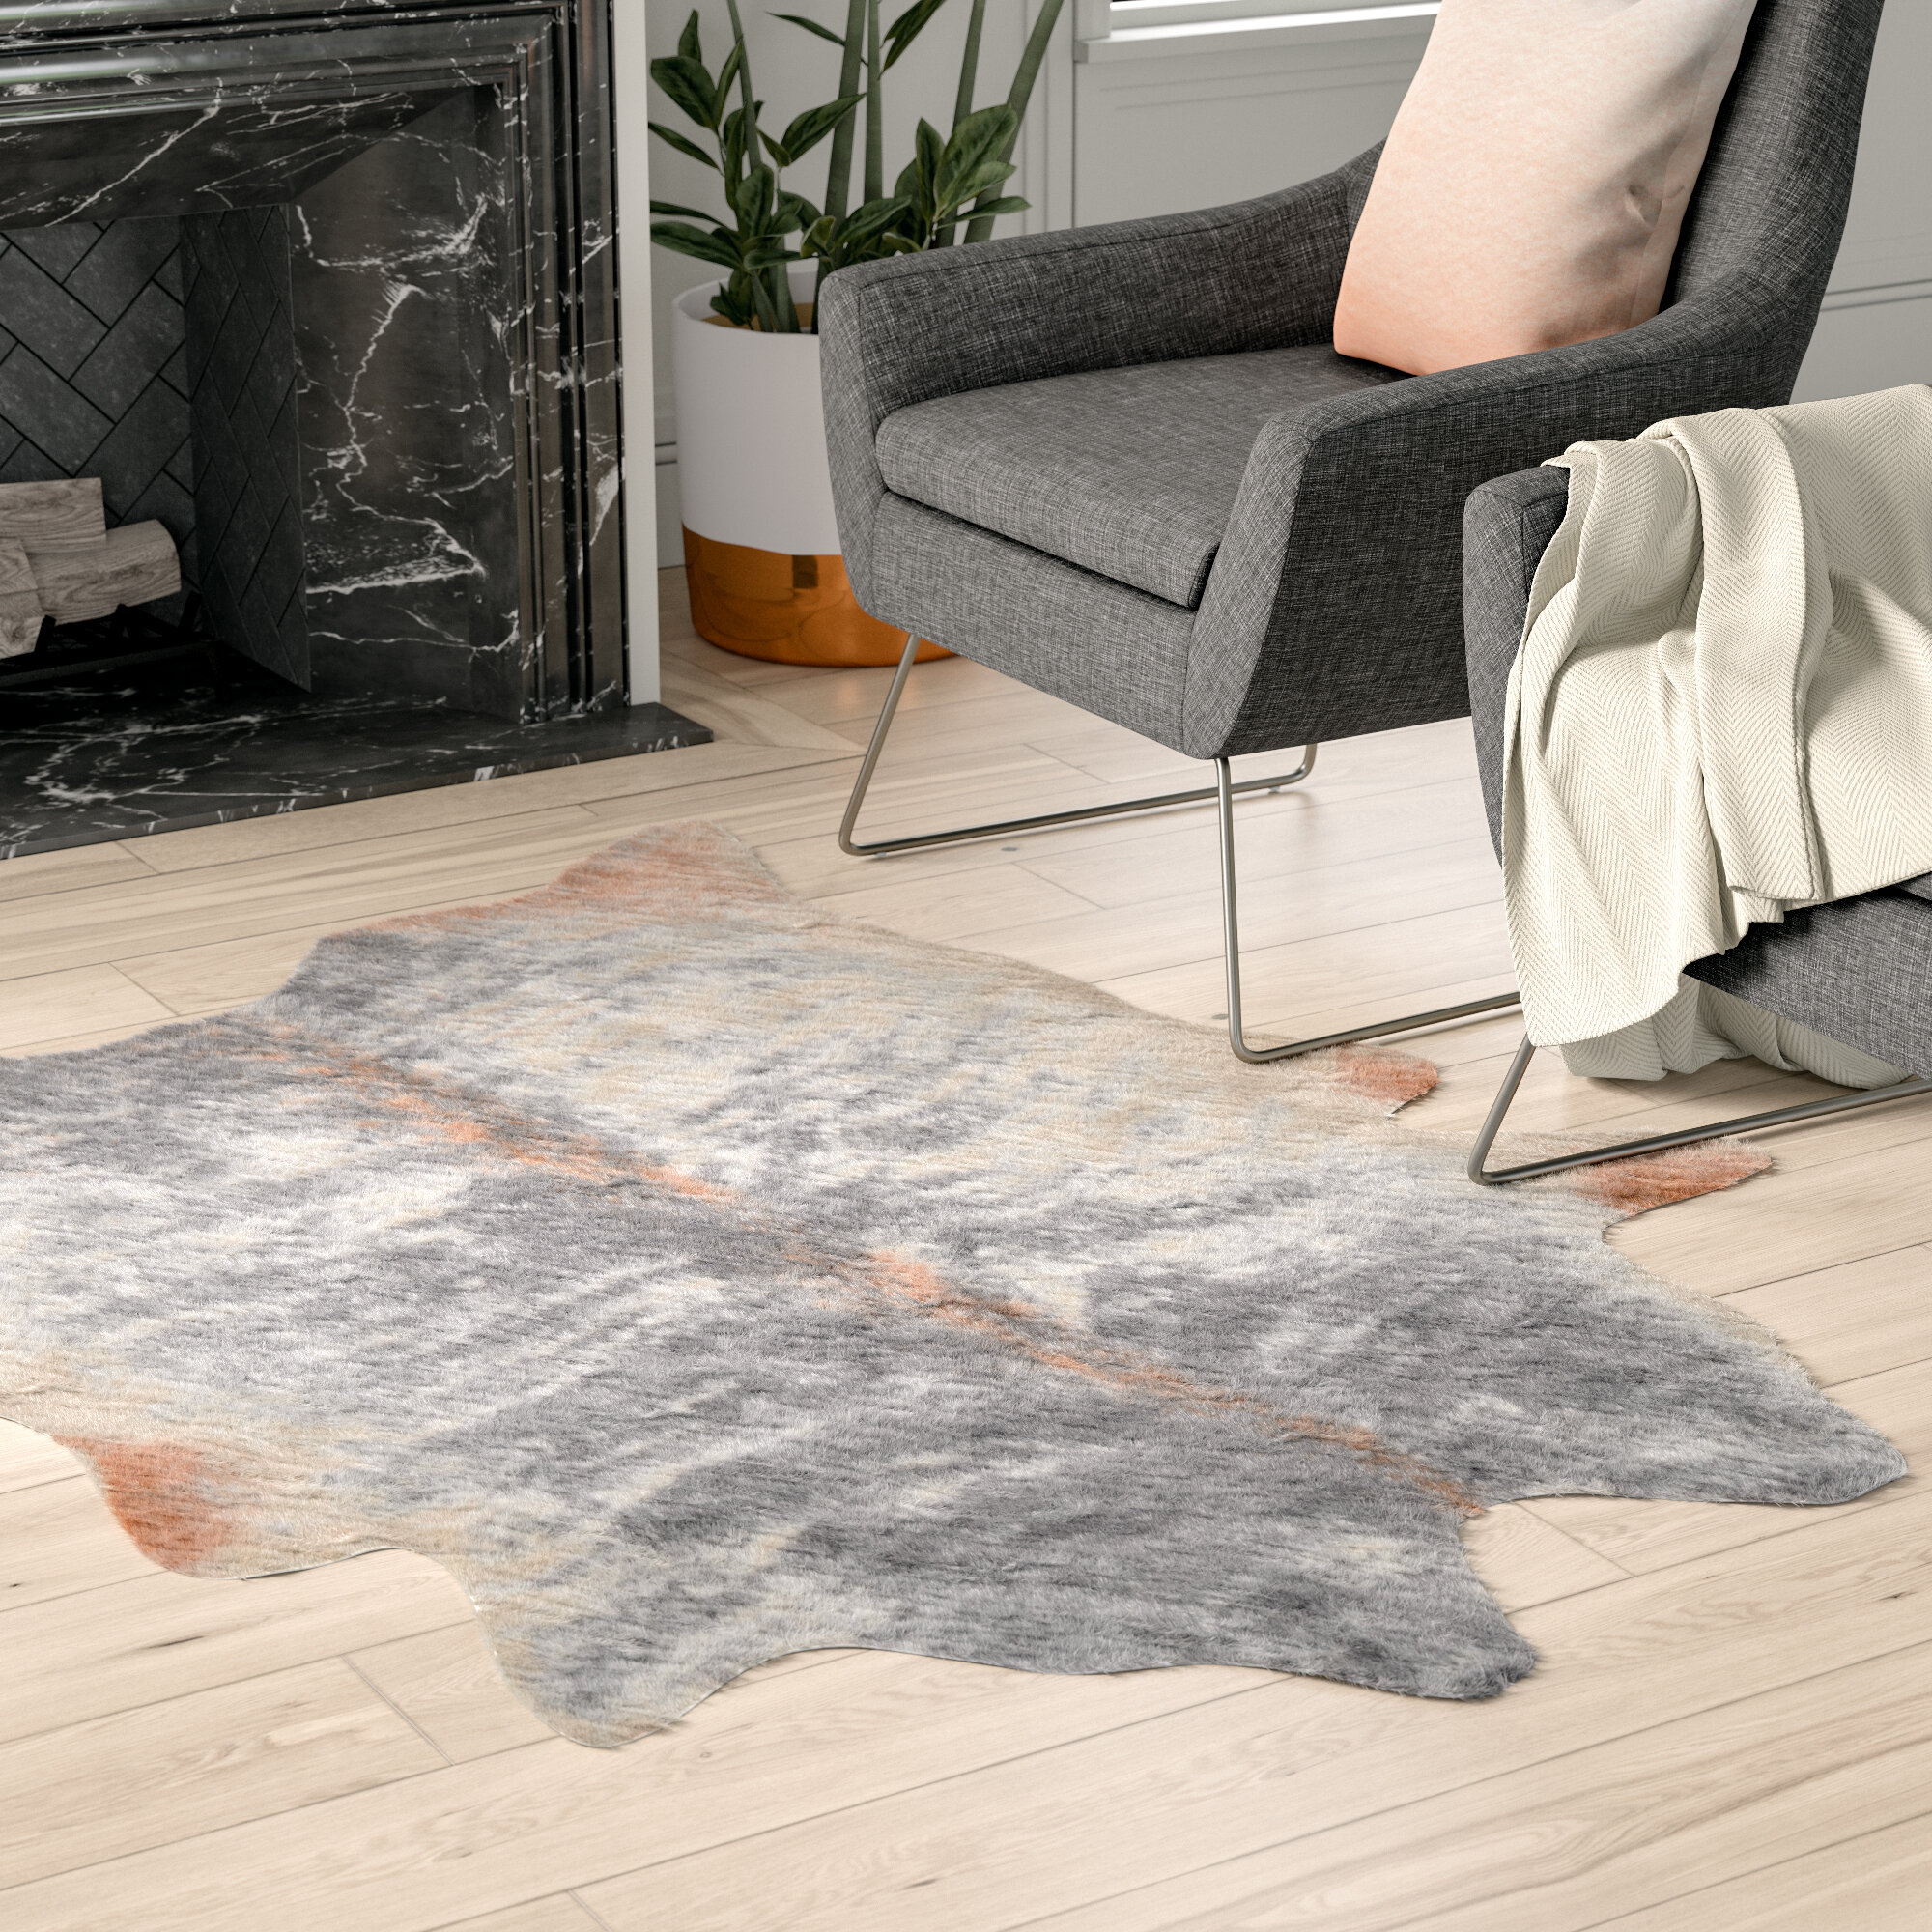 Image result for The Ultimate Natural Rug - The Humble Cowhide